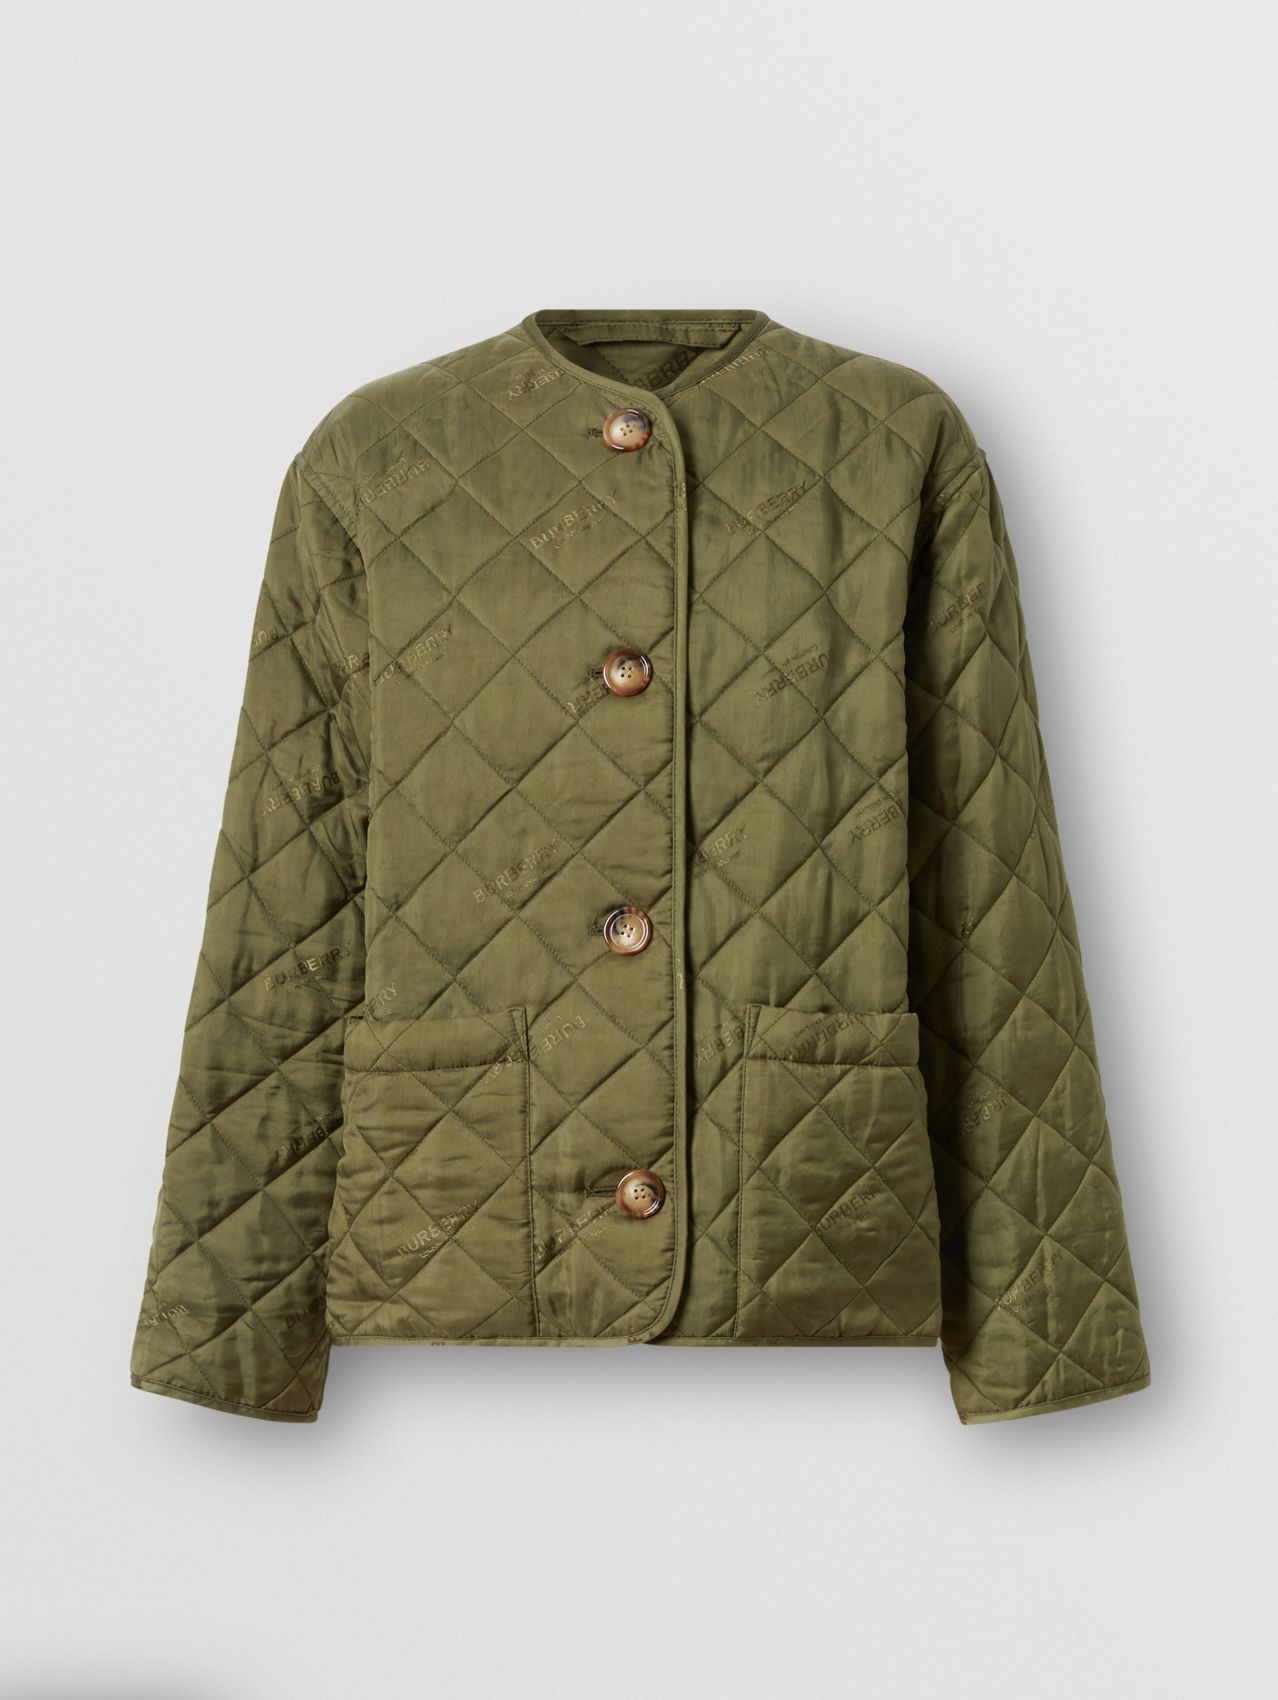 Logo Jacquard Diamond Quilted Jacket in Olive